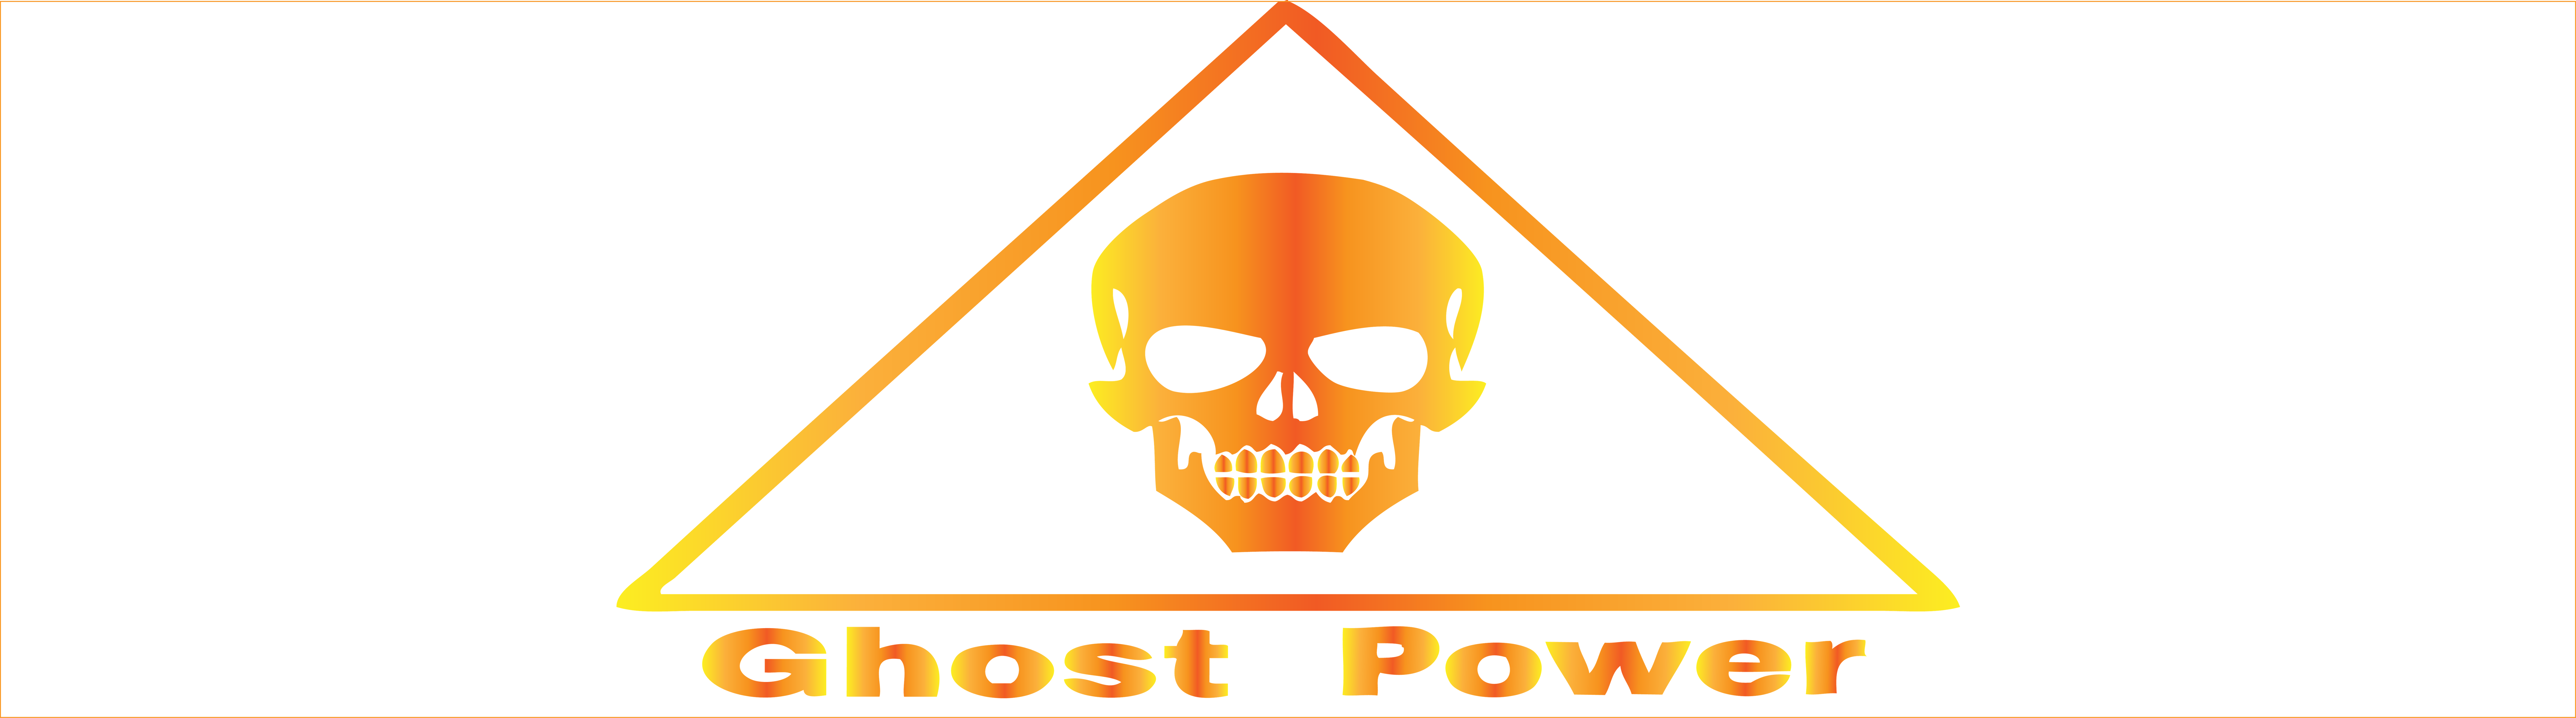 Super Ghost Web Logo